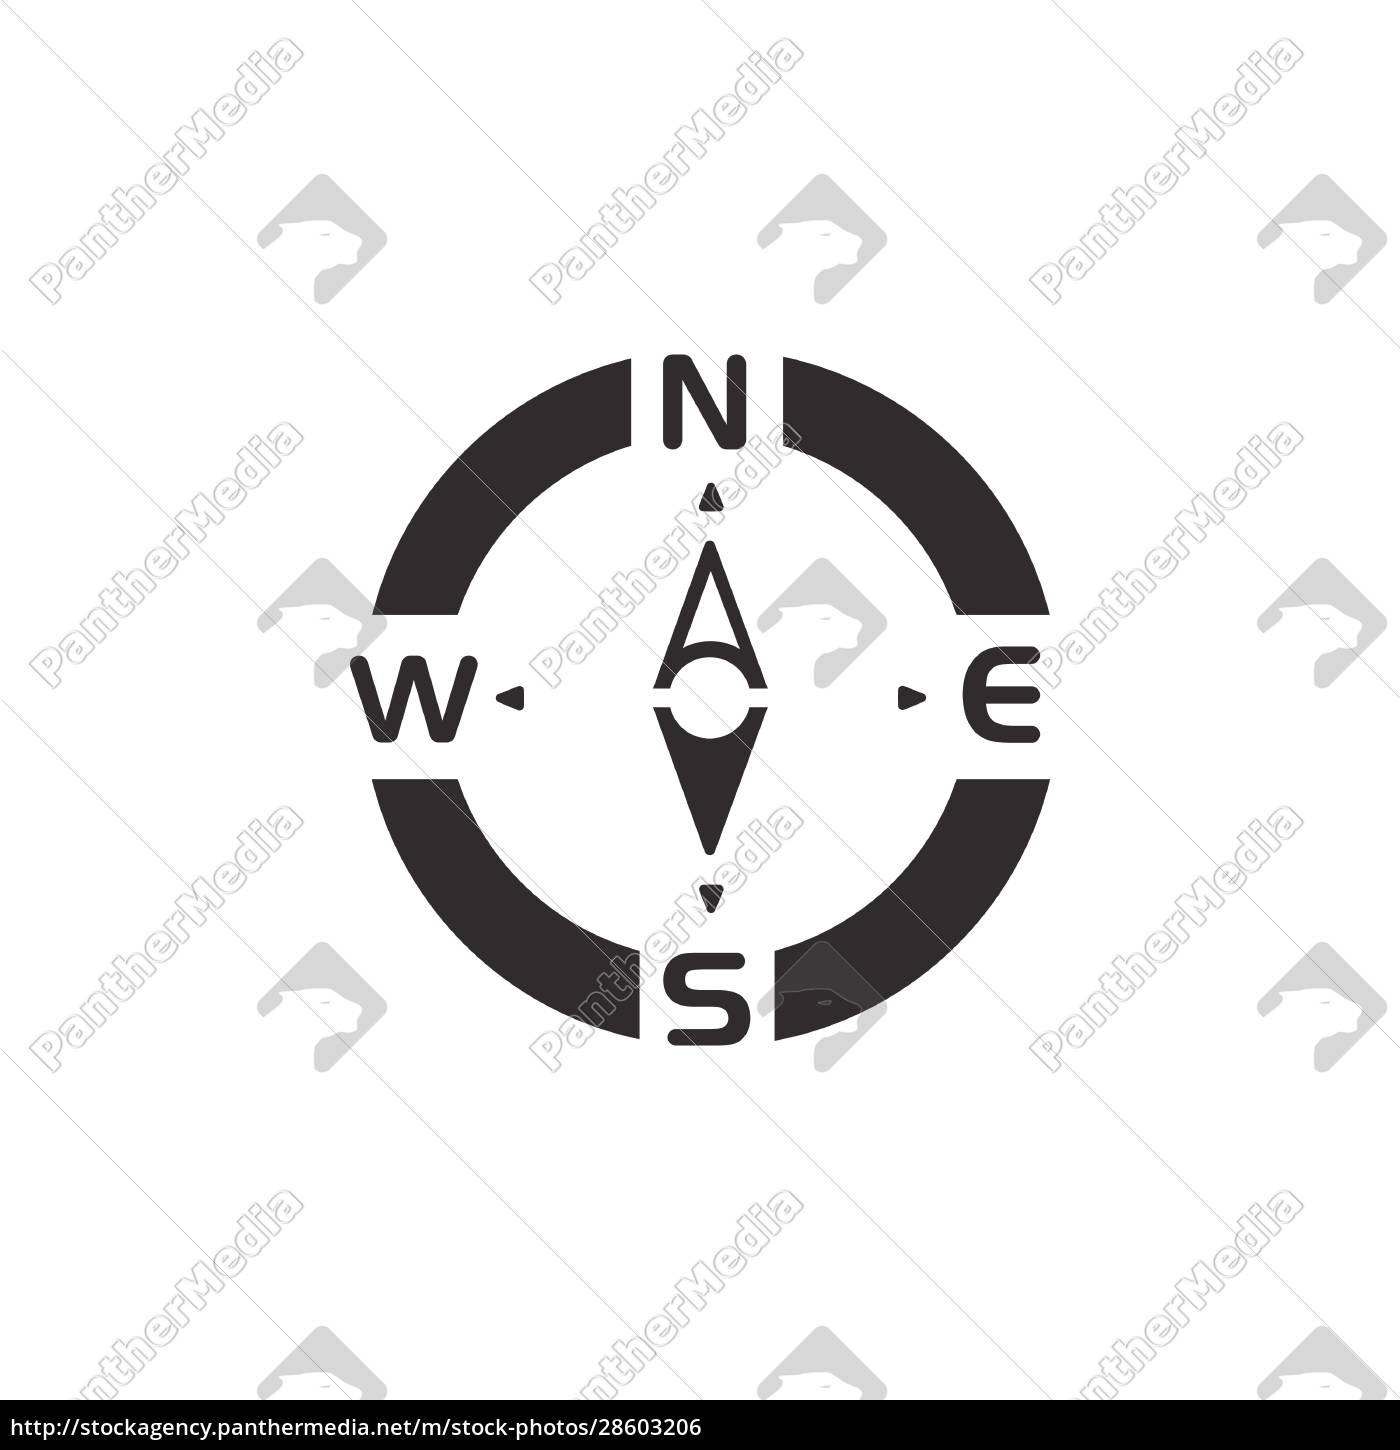 compass., south, direction., icon., weather, and - 28603206